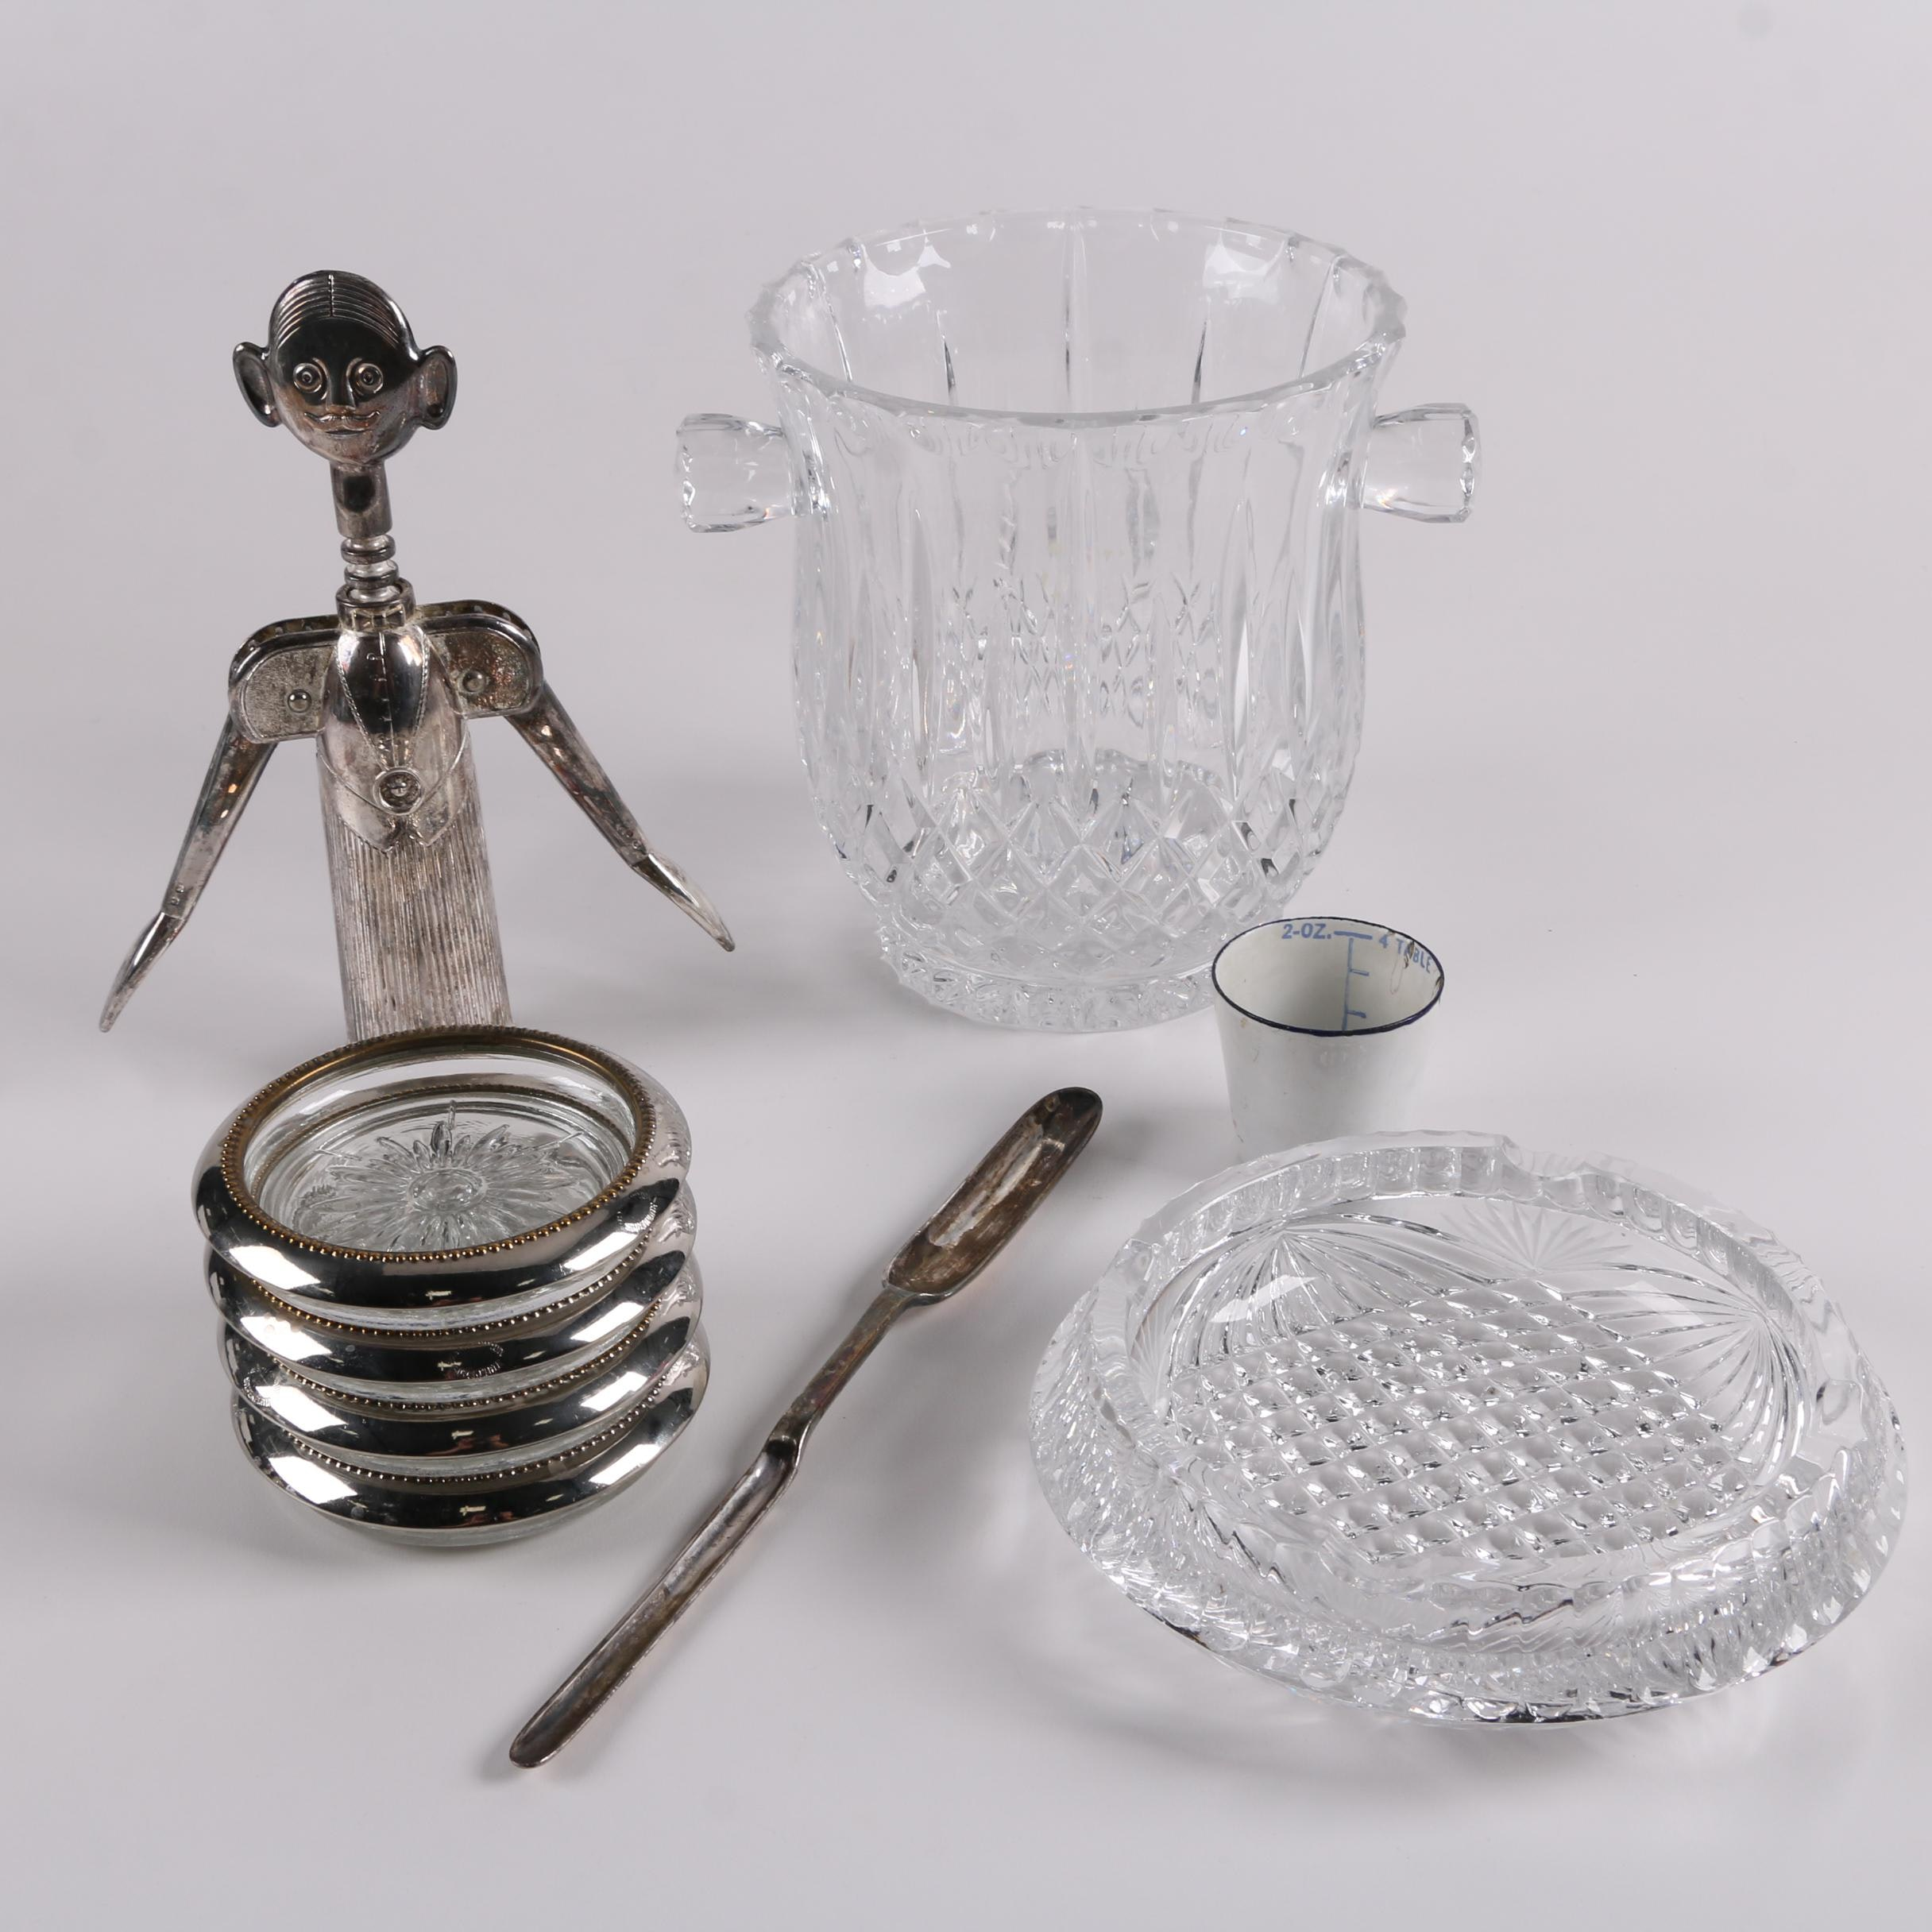 """Silver Plate Rimmed Coasters with """"Sommelier"""" Corkscrew, Marrow Scoop, and More"""